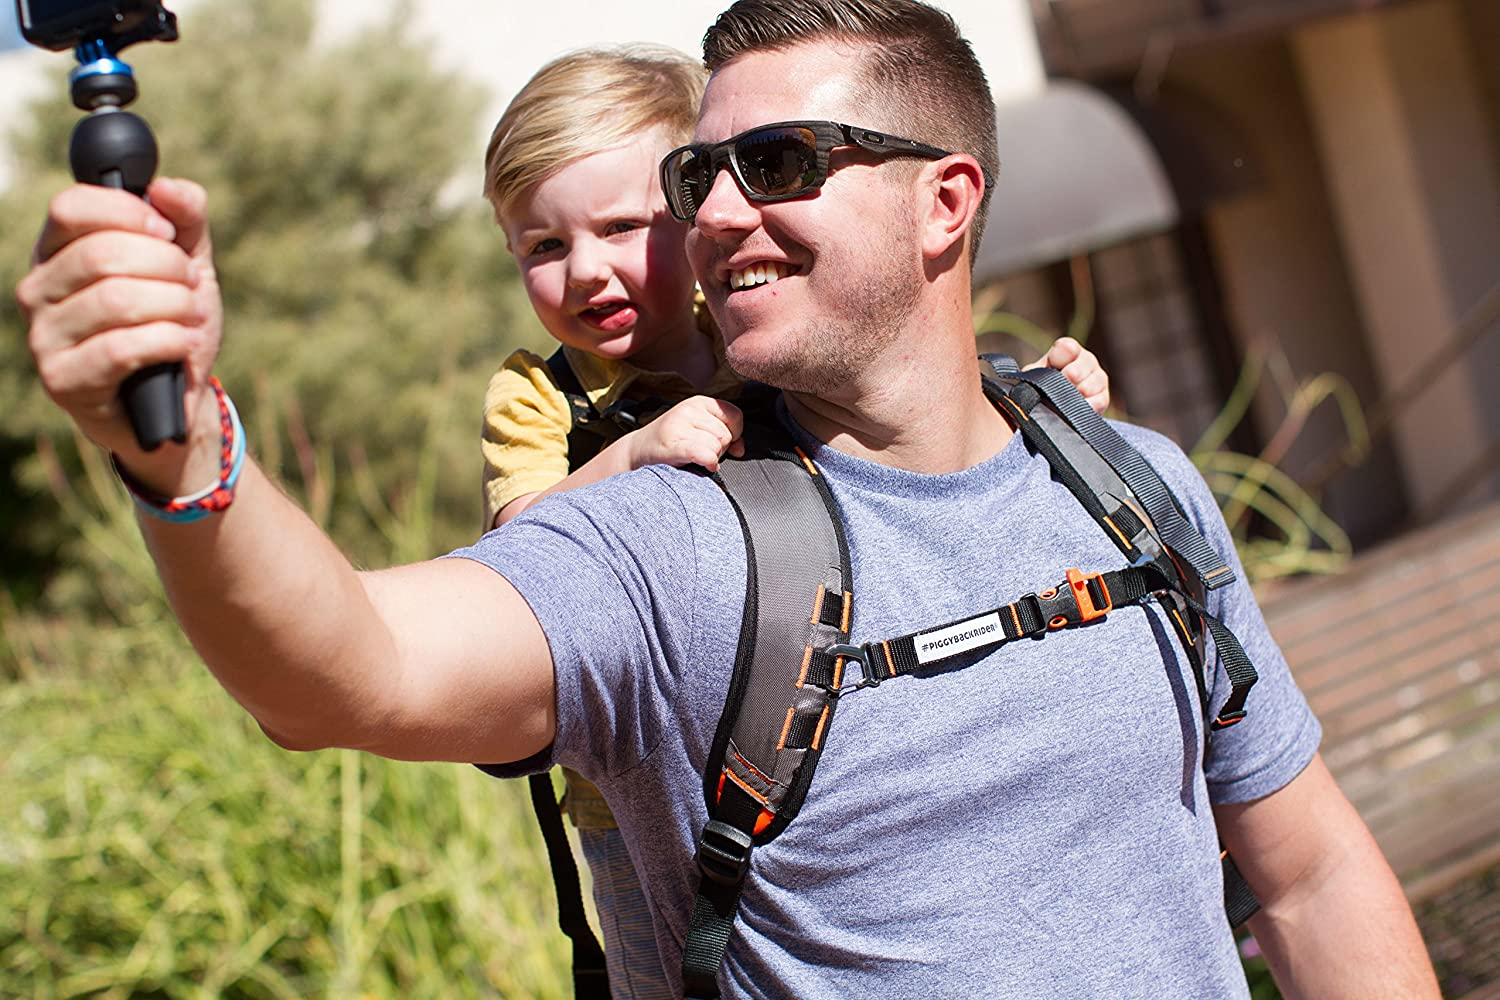 Child Toddler Carrier Backpack for Hiking Trails Piggyback Rider Scout Model Fitness Travel Camping